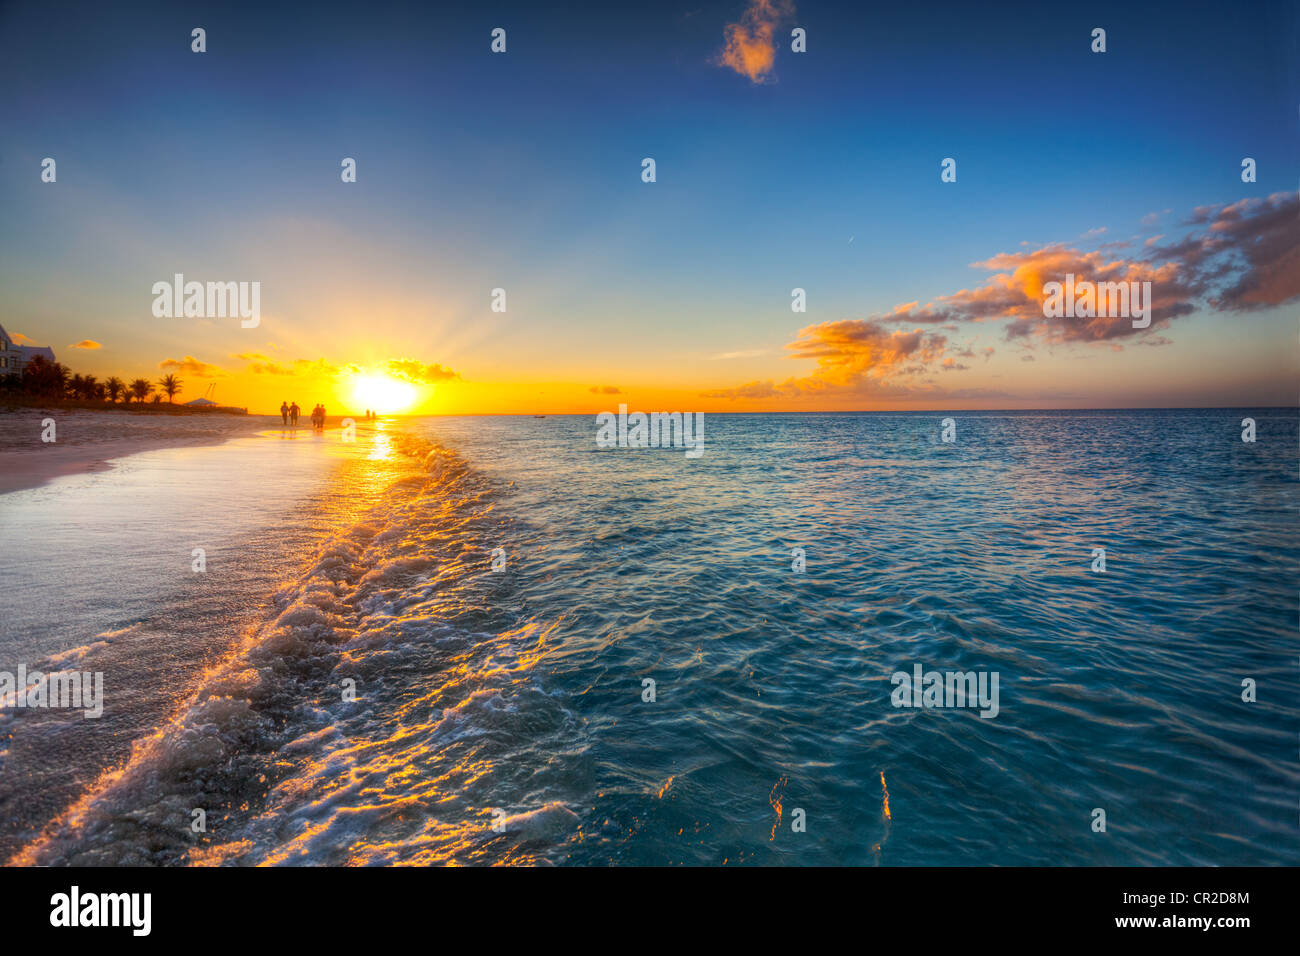 Grace Bay Beach, Turks & Caicos, with the setting sun at the horizon - Stock Image